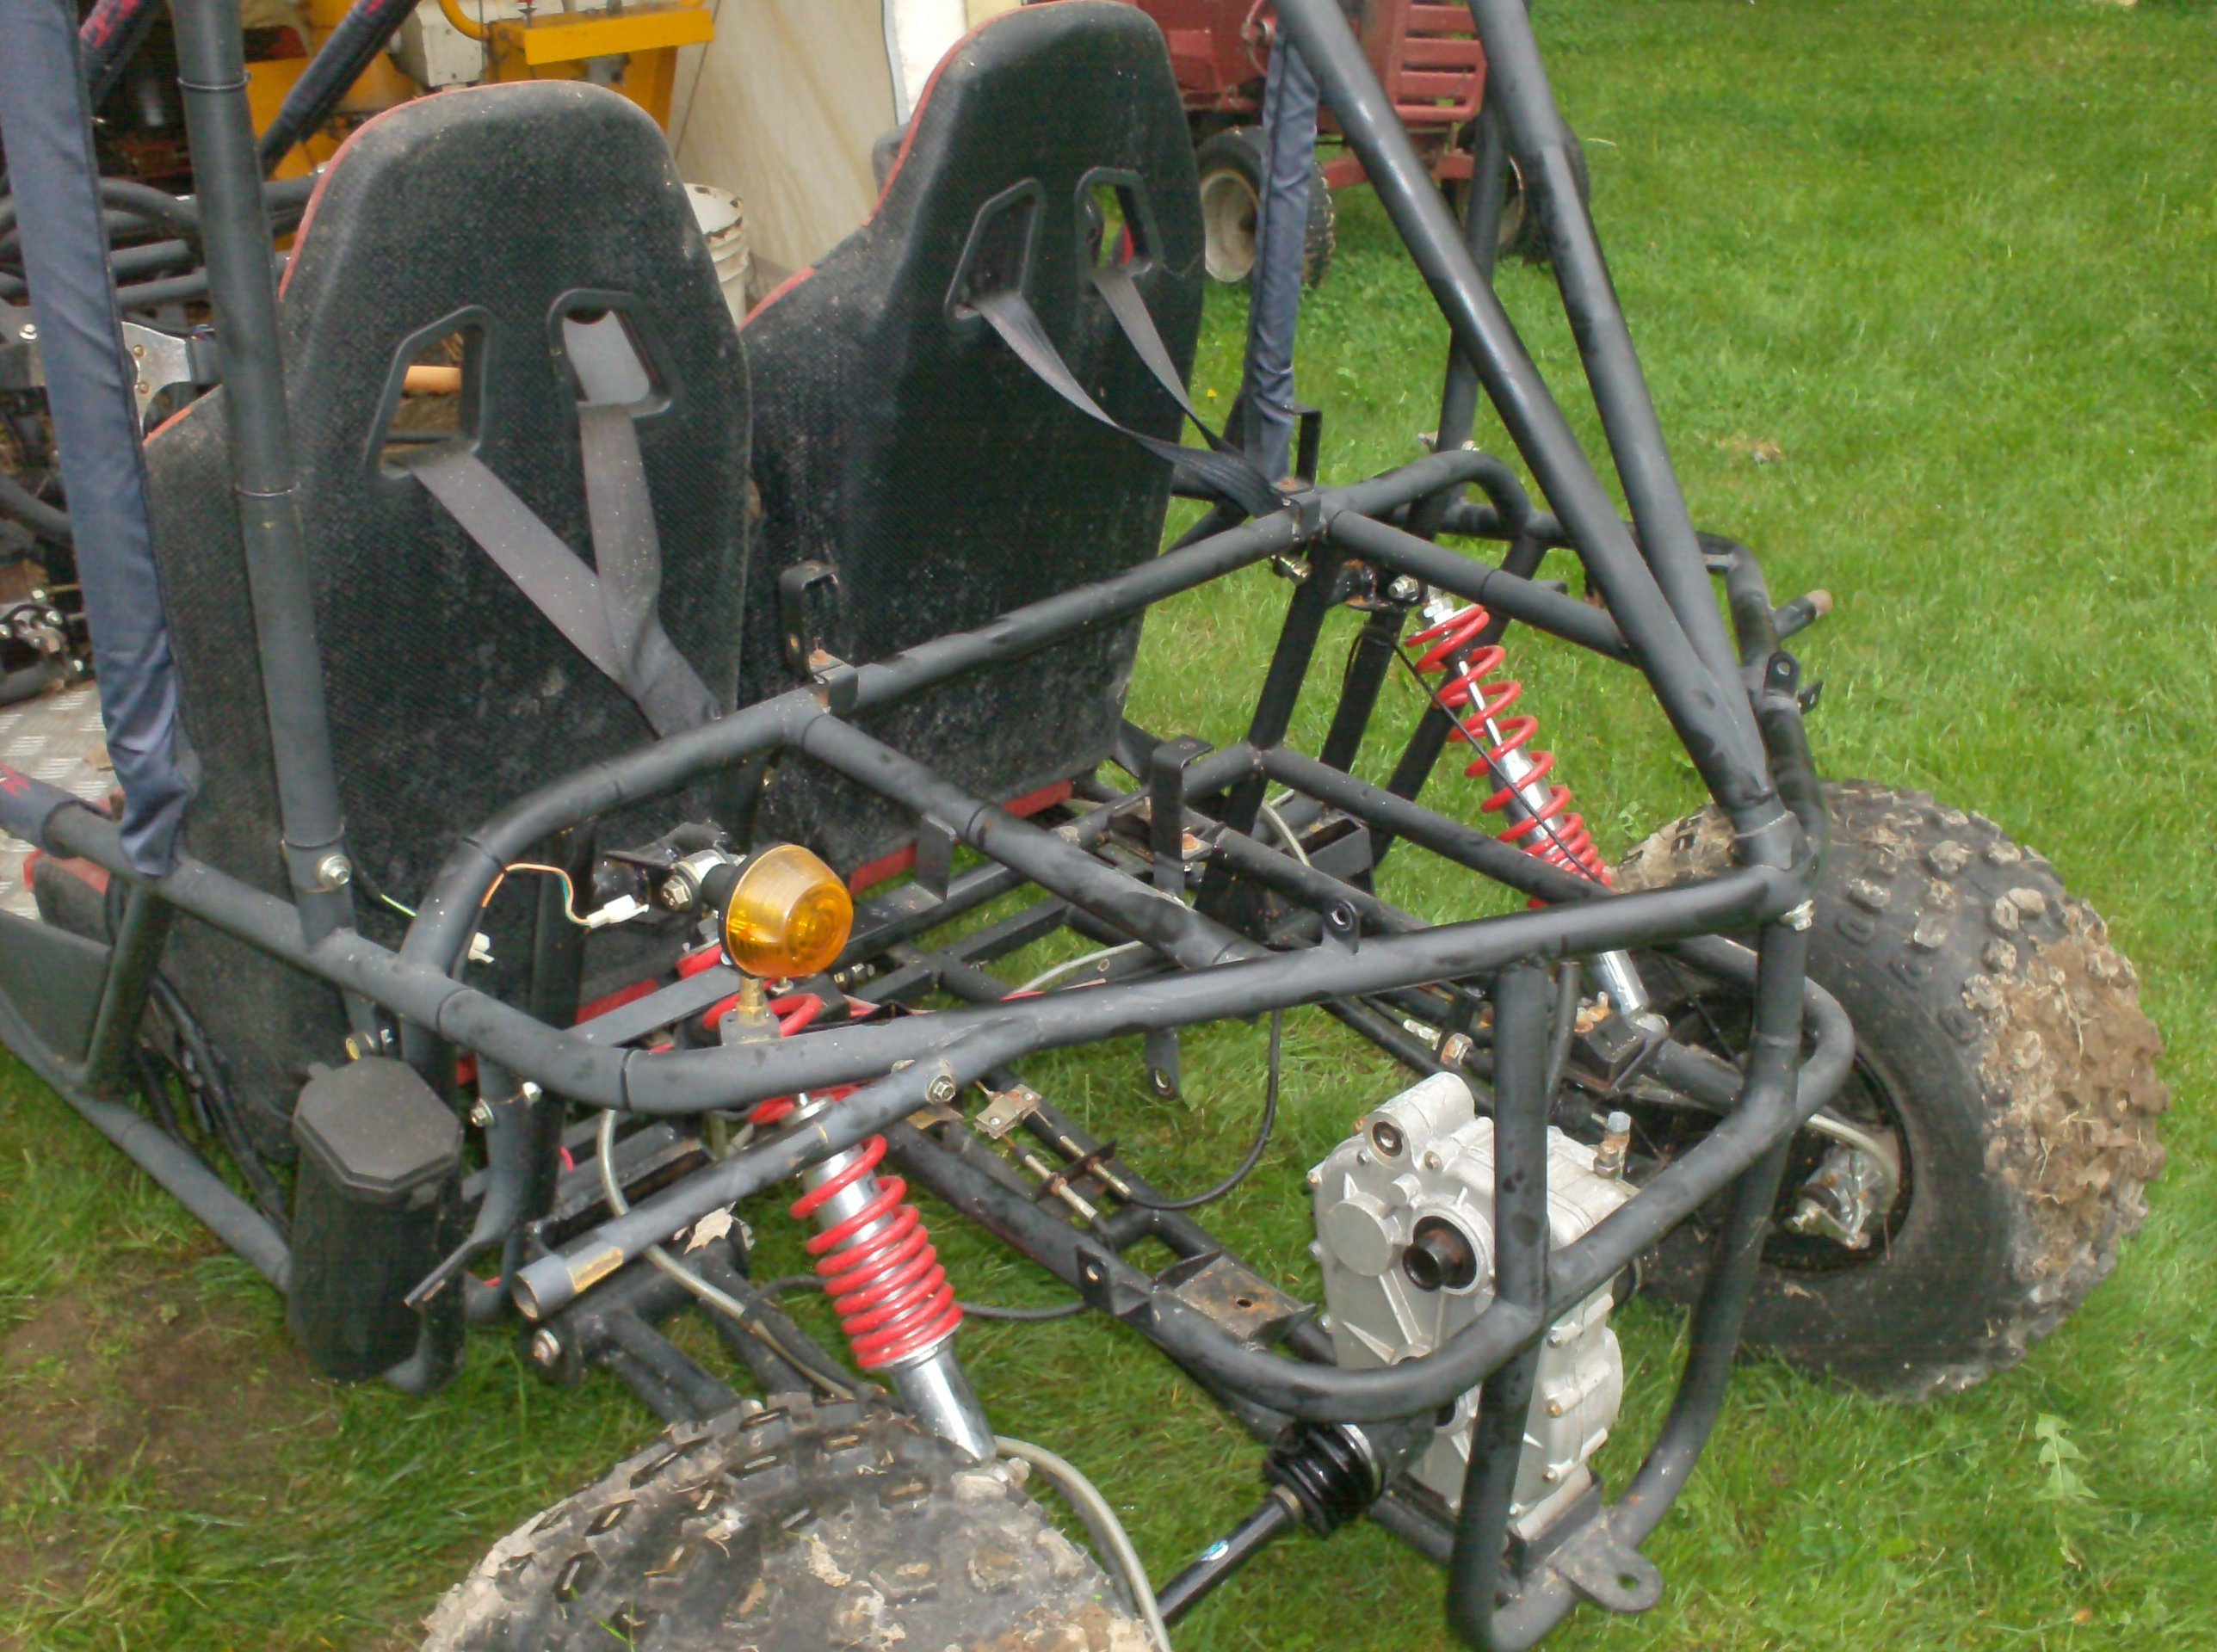 Dune Buggy Heart Transplant Cm450e With Engine Video Hpim1977 Jpg